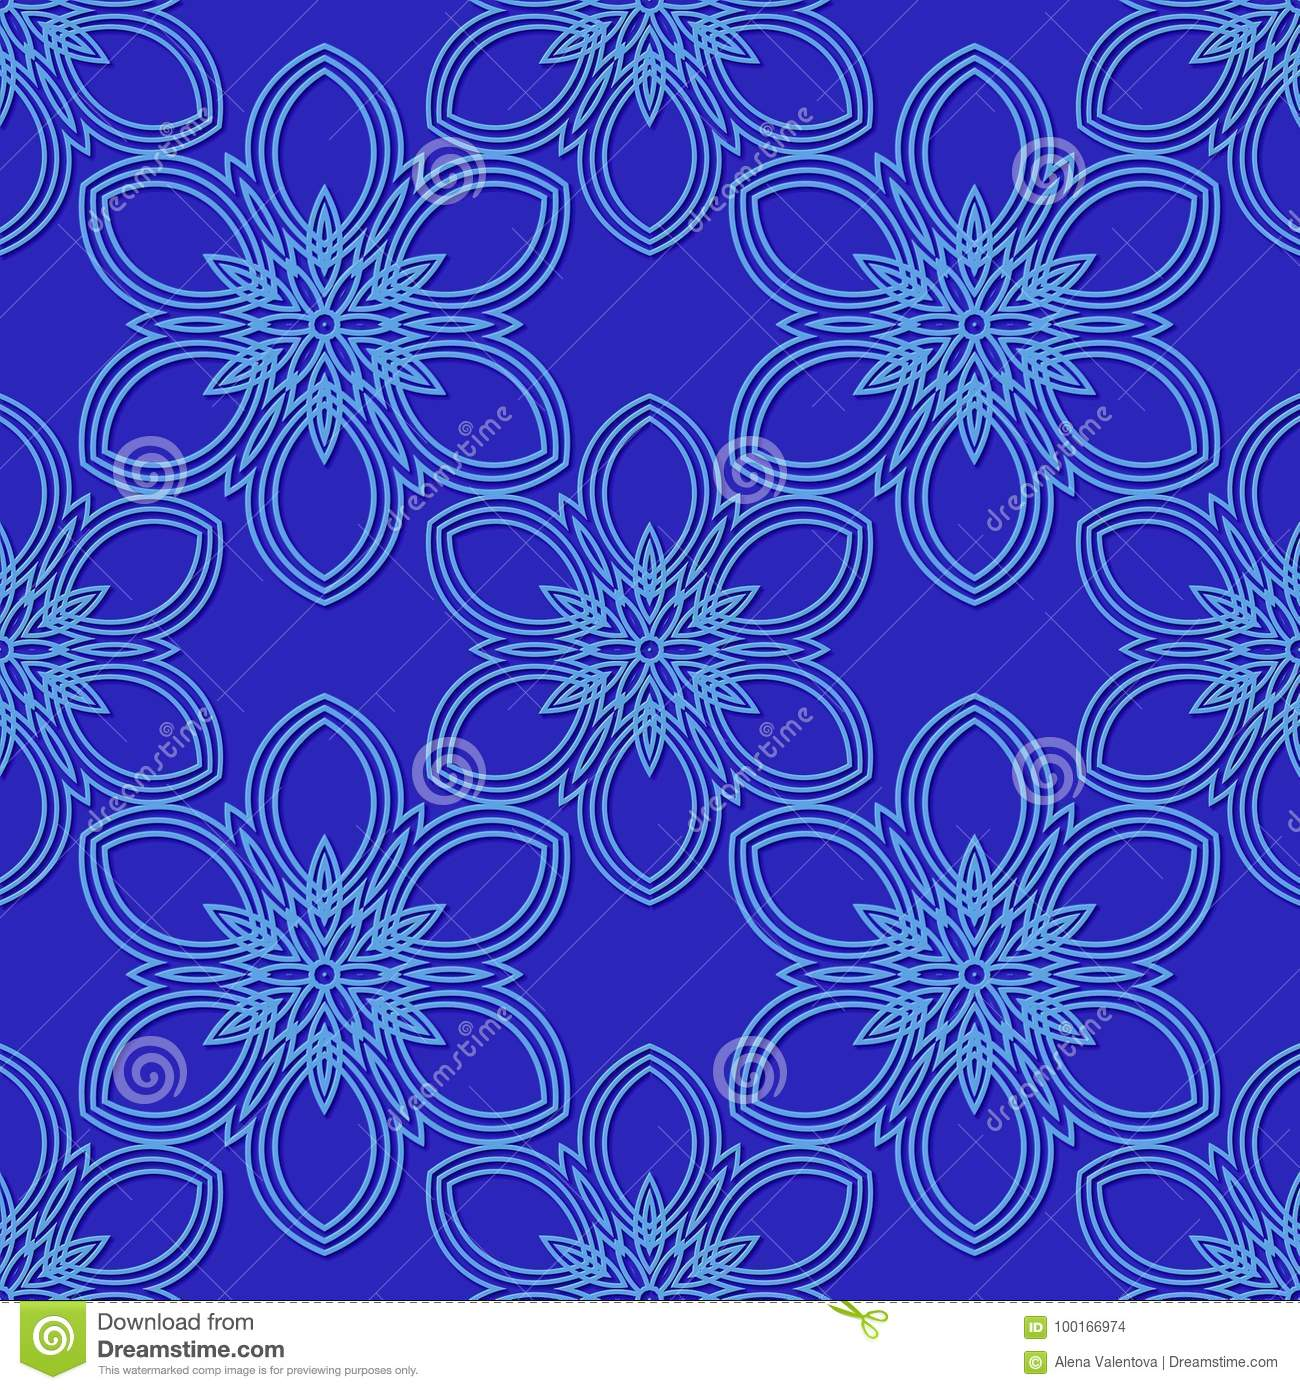 blue pattern with flowers seamless pattern for printing on canvas